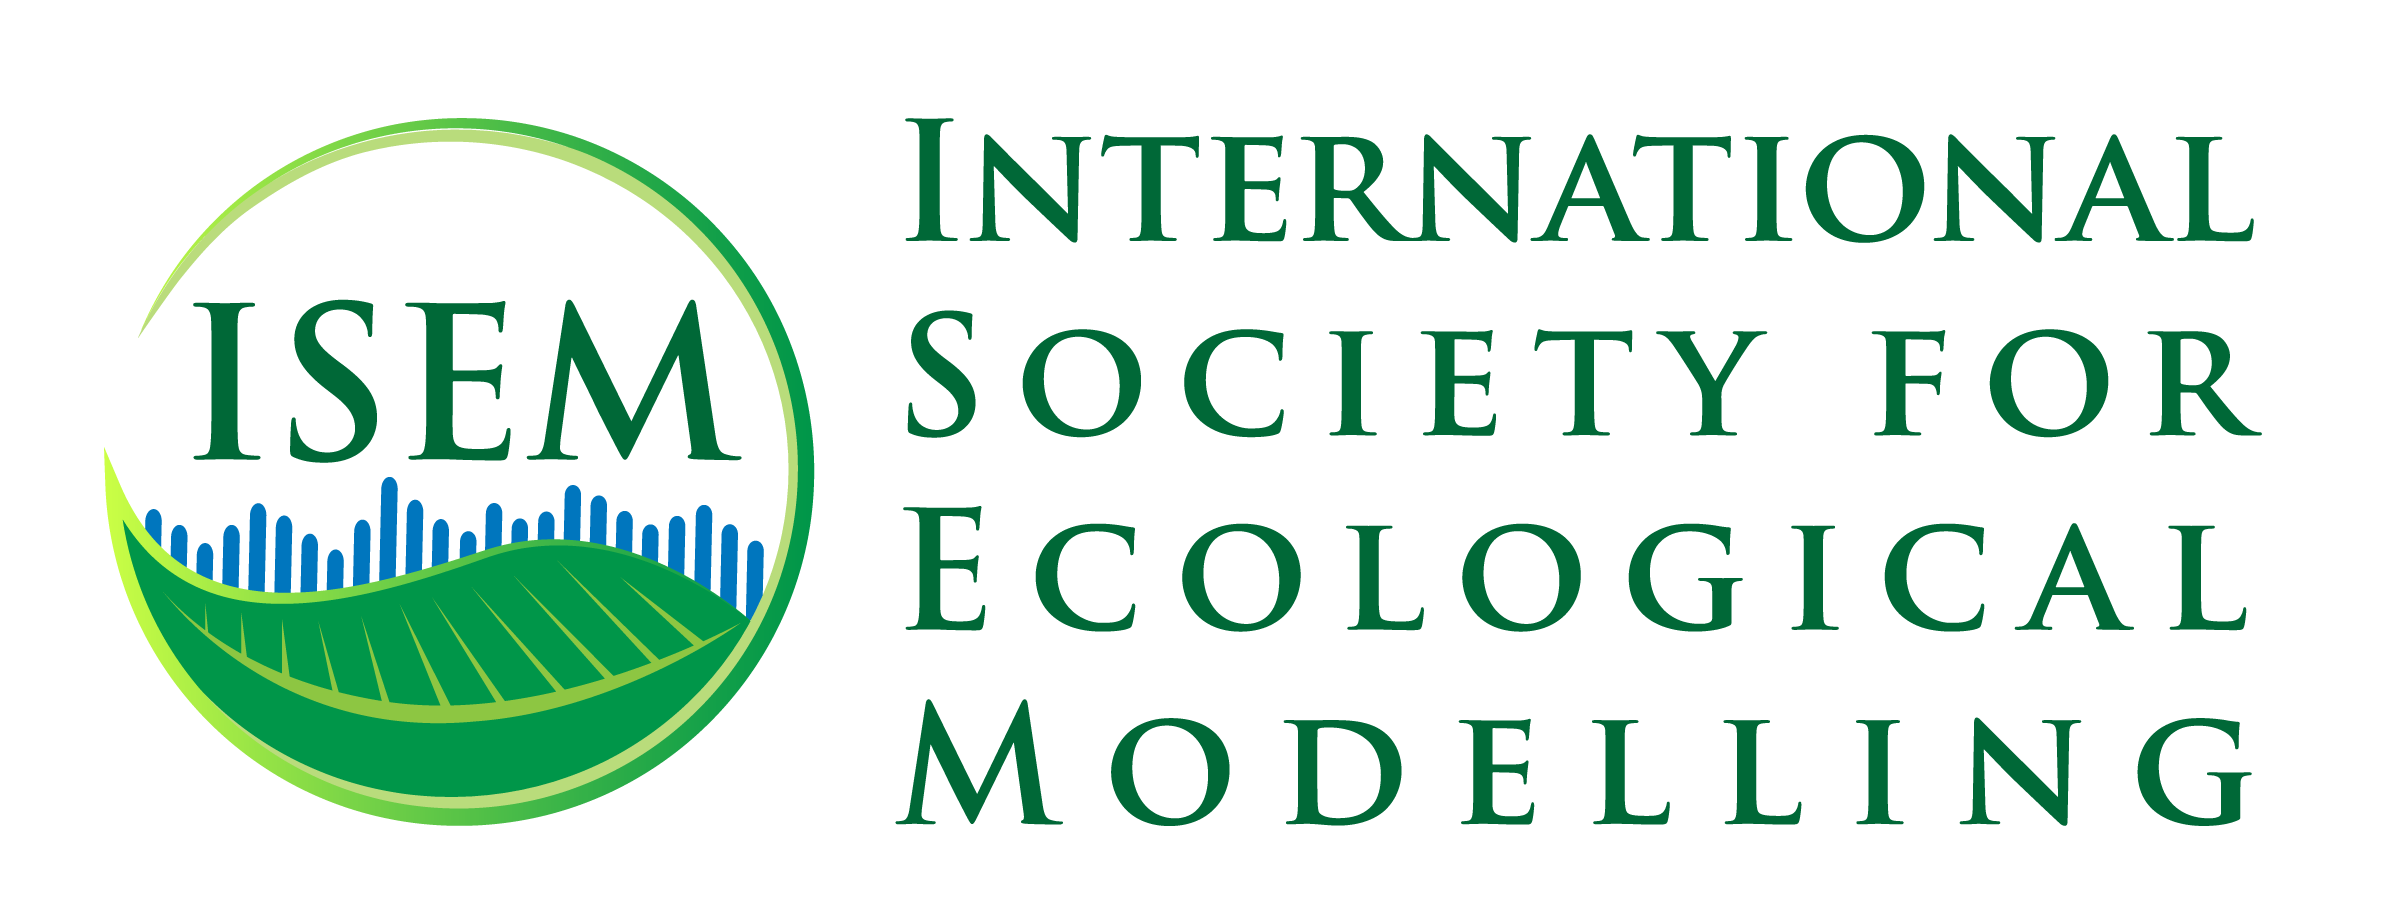 logo for International Society of Ecological Modelling